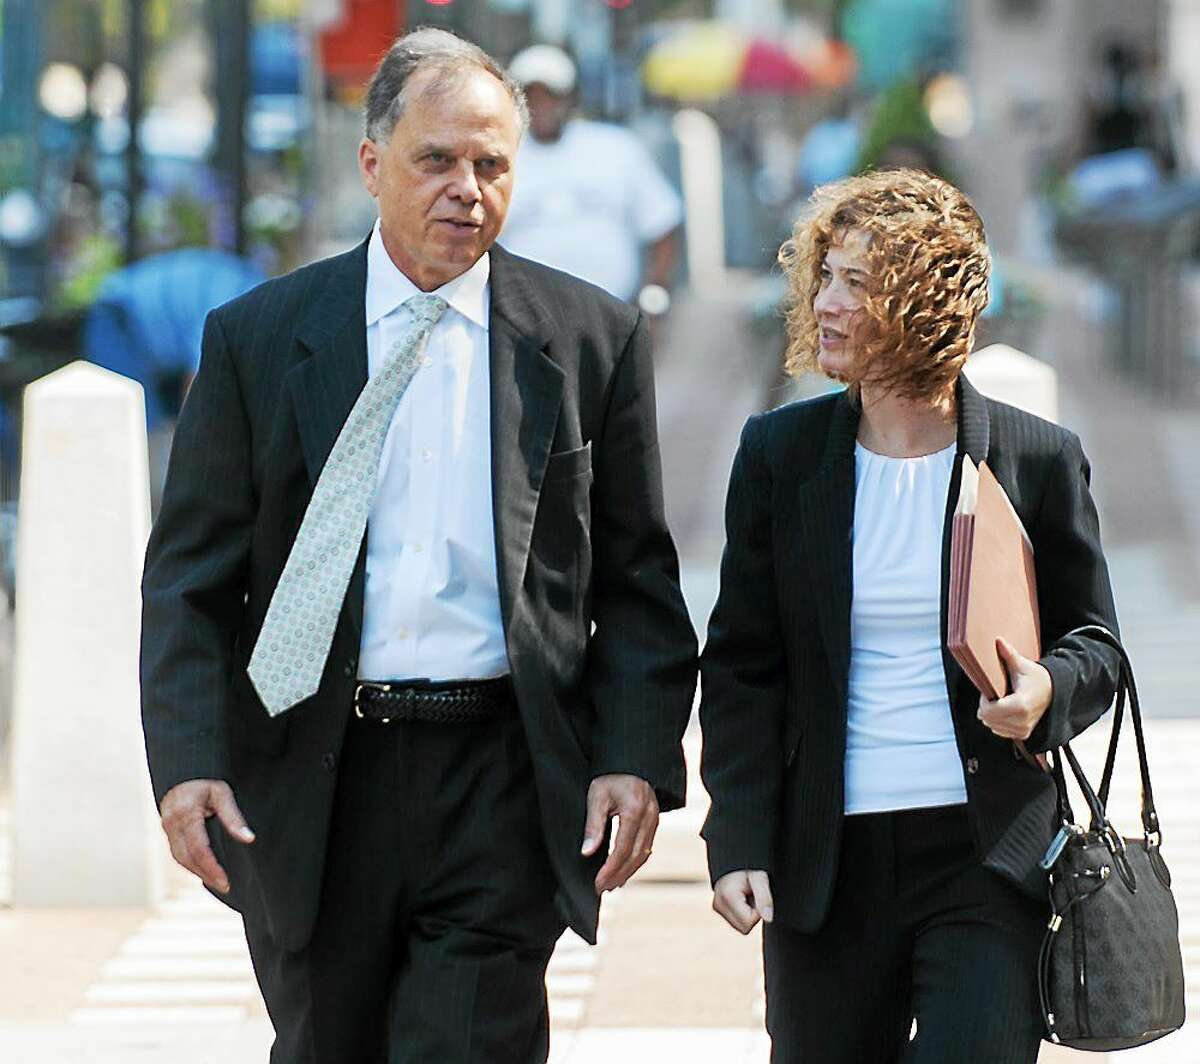 Brian Foley enters the Federal Court House in New Haven Friday as a government witness to former Conn. Gov. John G. Rowland alleged campaign financing fraud. With him is Jessica Santos, his attorney.